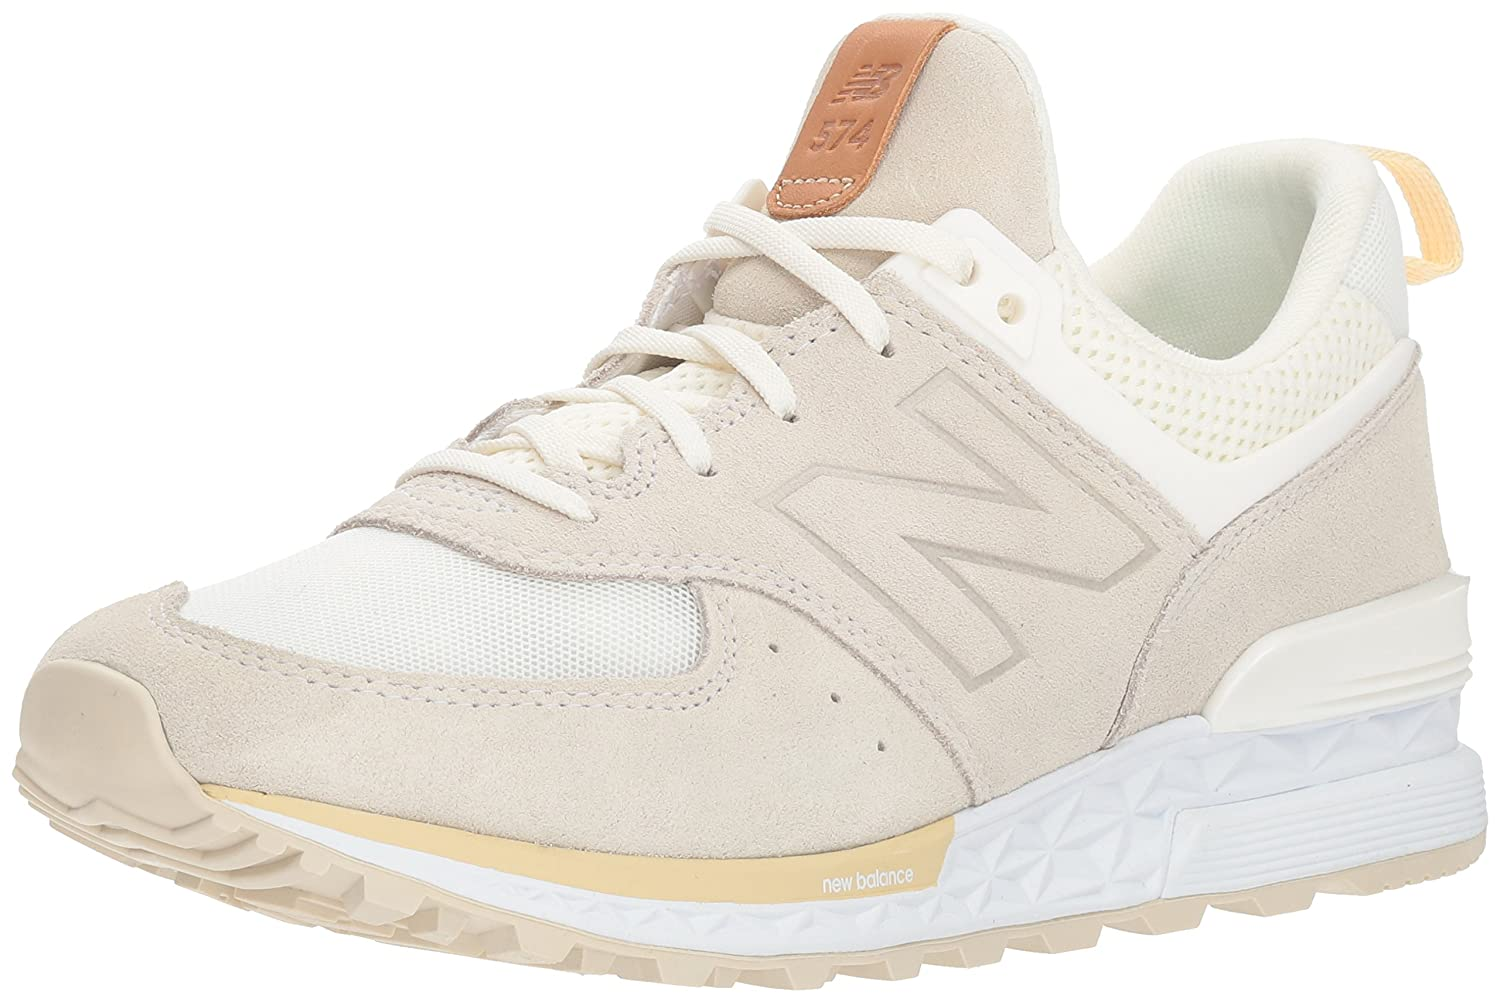 New Balance Women's 574v1 Fresh Foam Sneaker B077S6F416 6 D US|Sea Salt